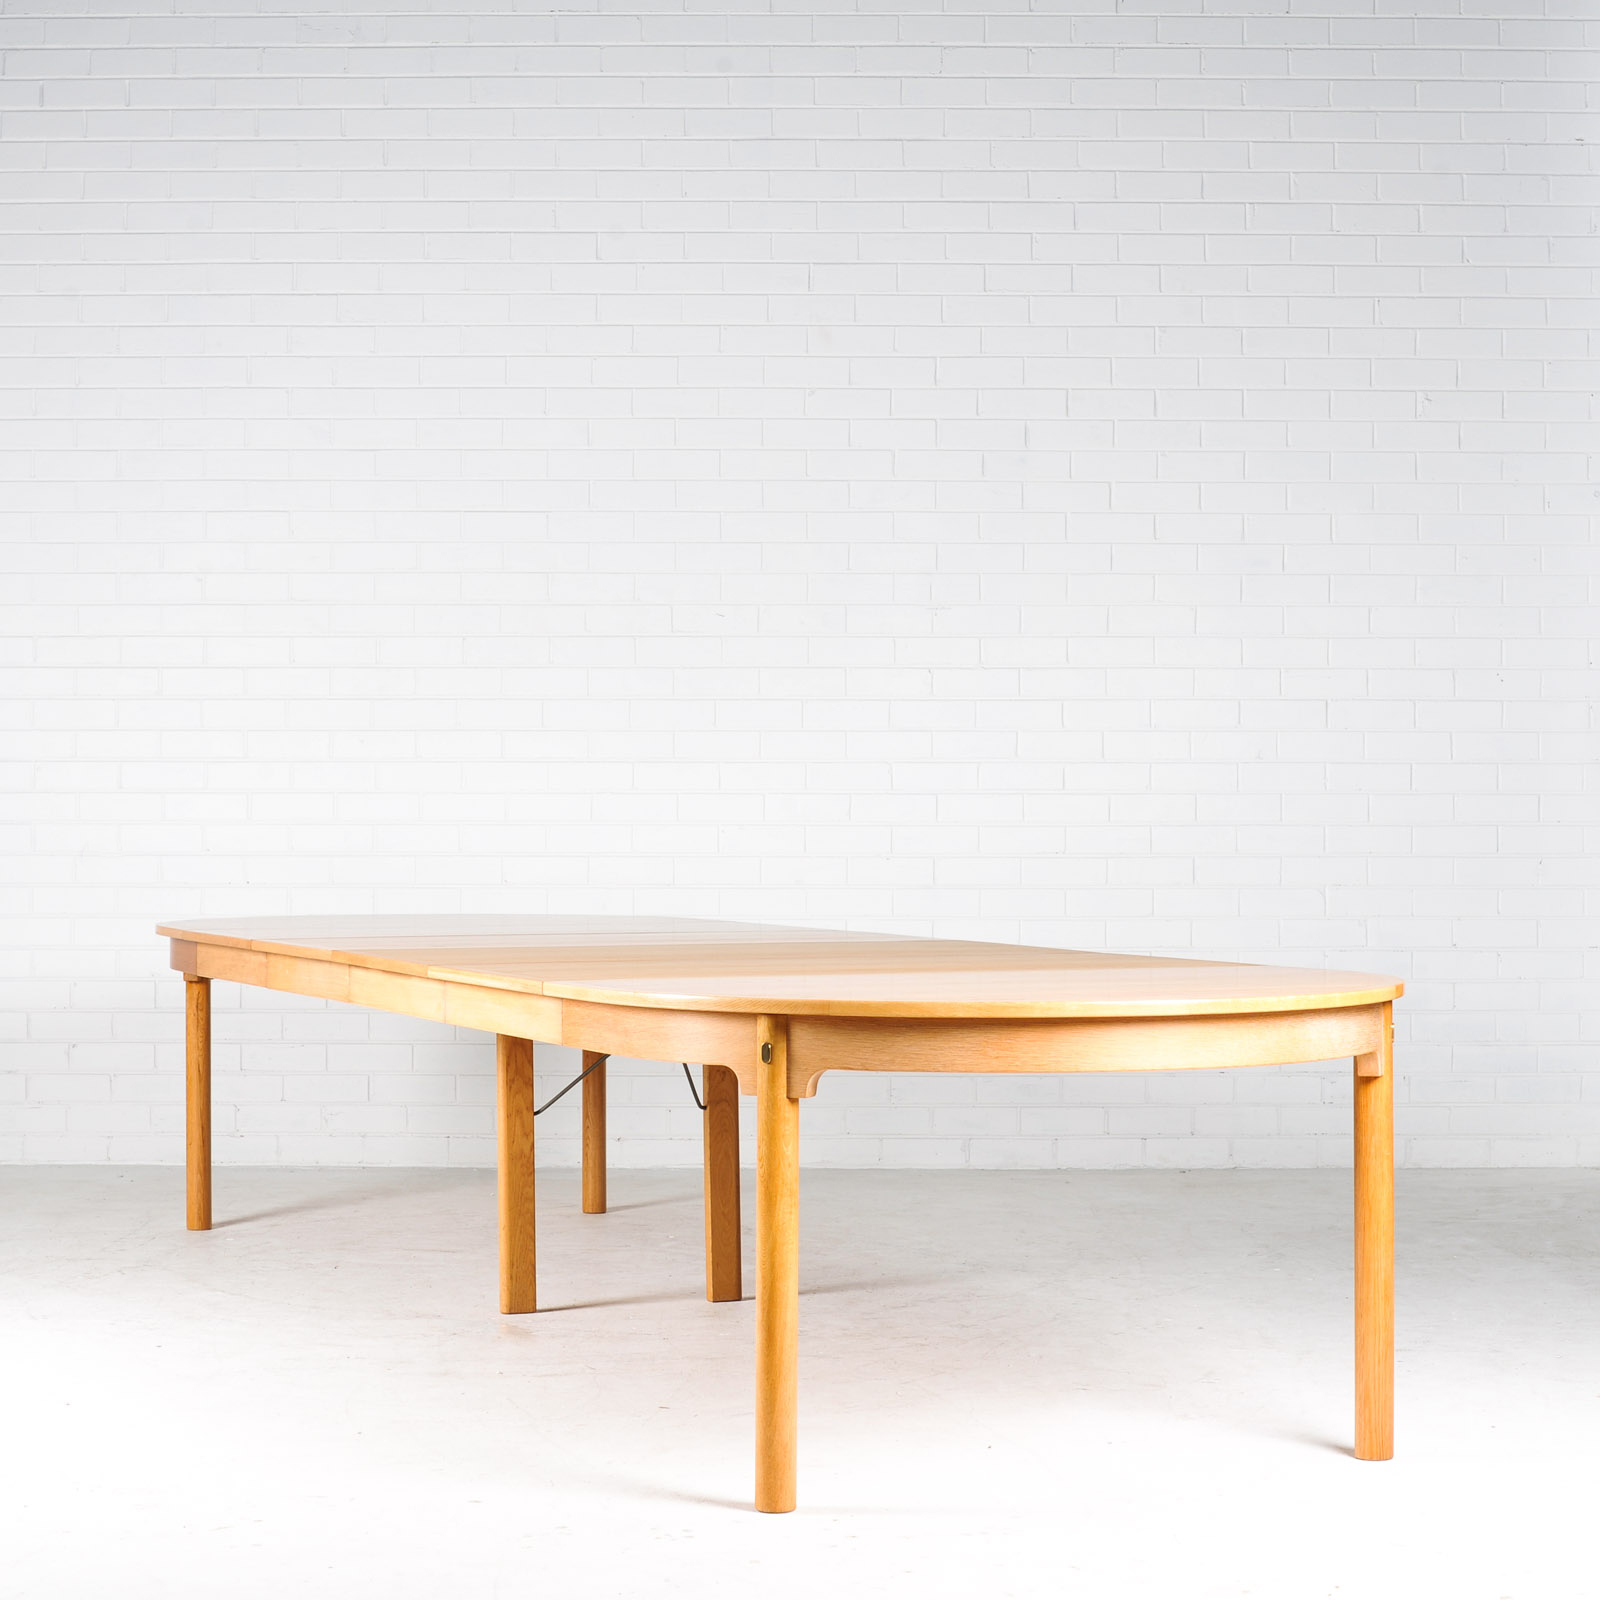 Extra Large Dining Table by Borge Mogensesn in Oak with Four Leaves, 1960s, Denmark 01